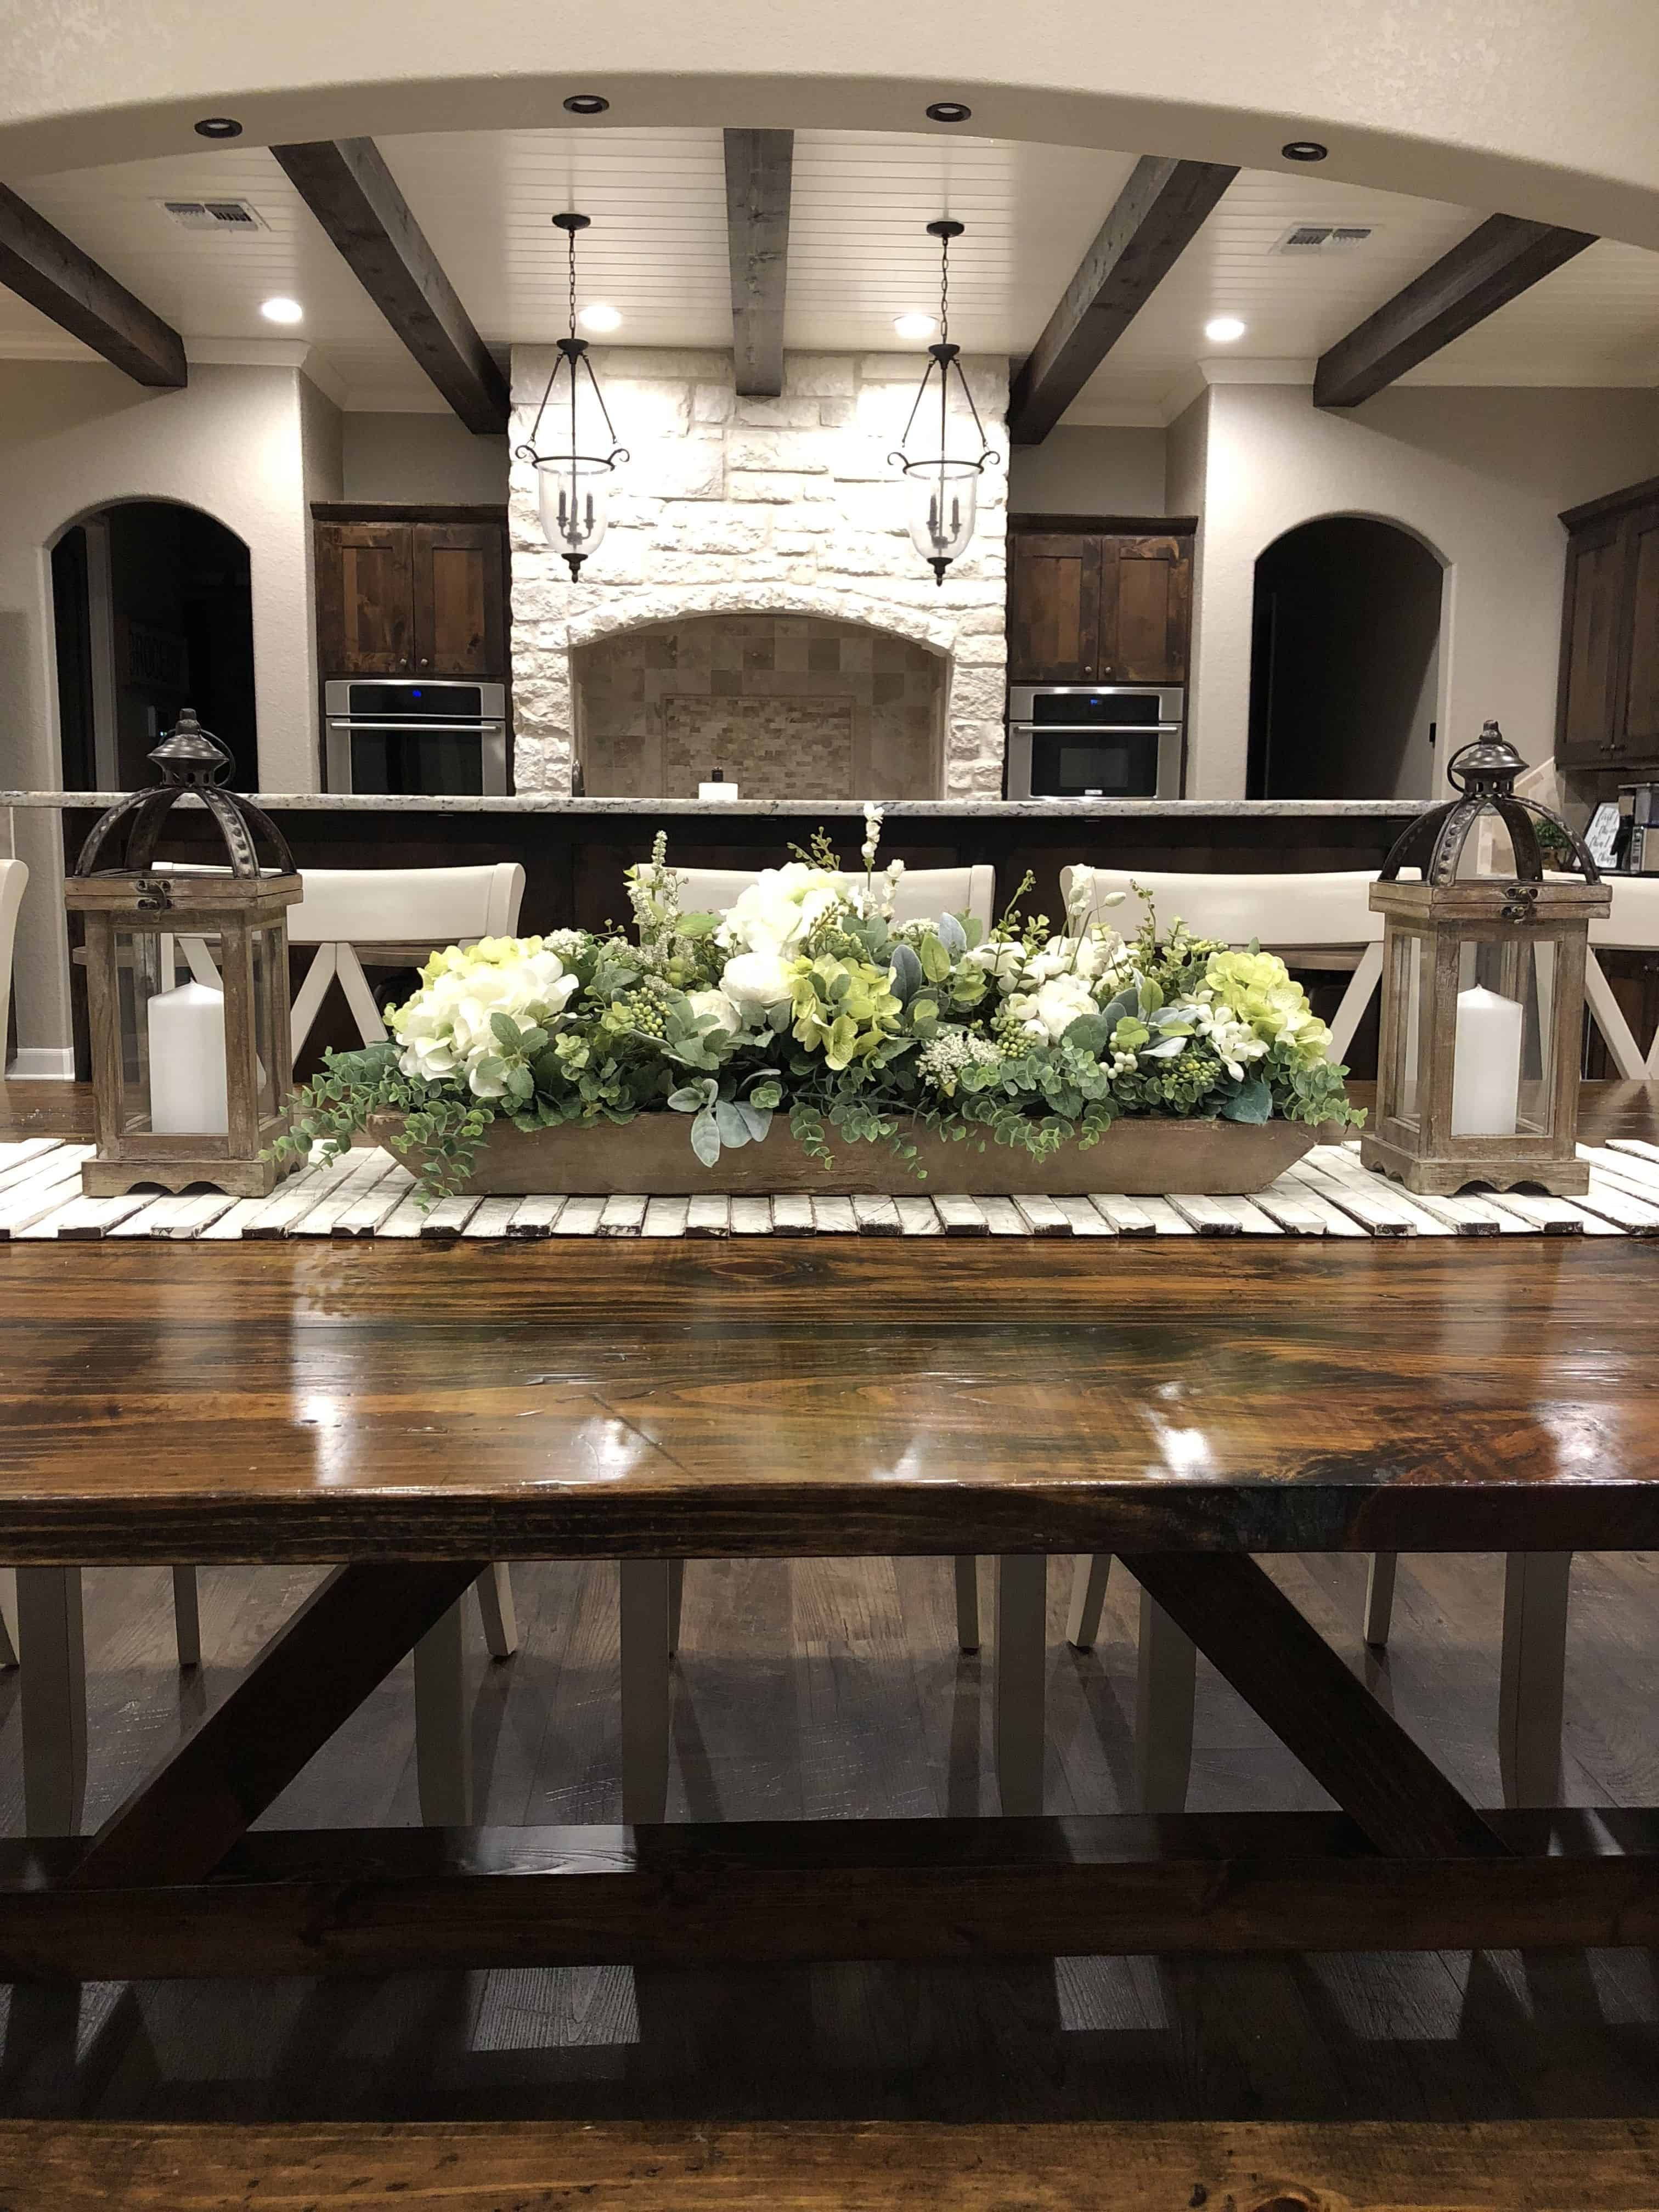 Best Free Of Charge Farmhouse Table Centerpiece Suggestions Creating A Farmhouse Table Is Just A Fa Dining Centerpiece Dining Room Centerpiece Fall Dining Room